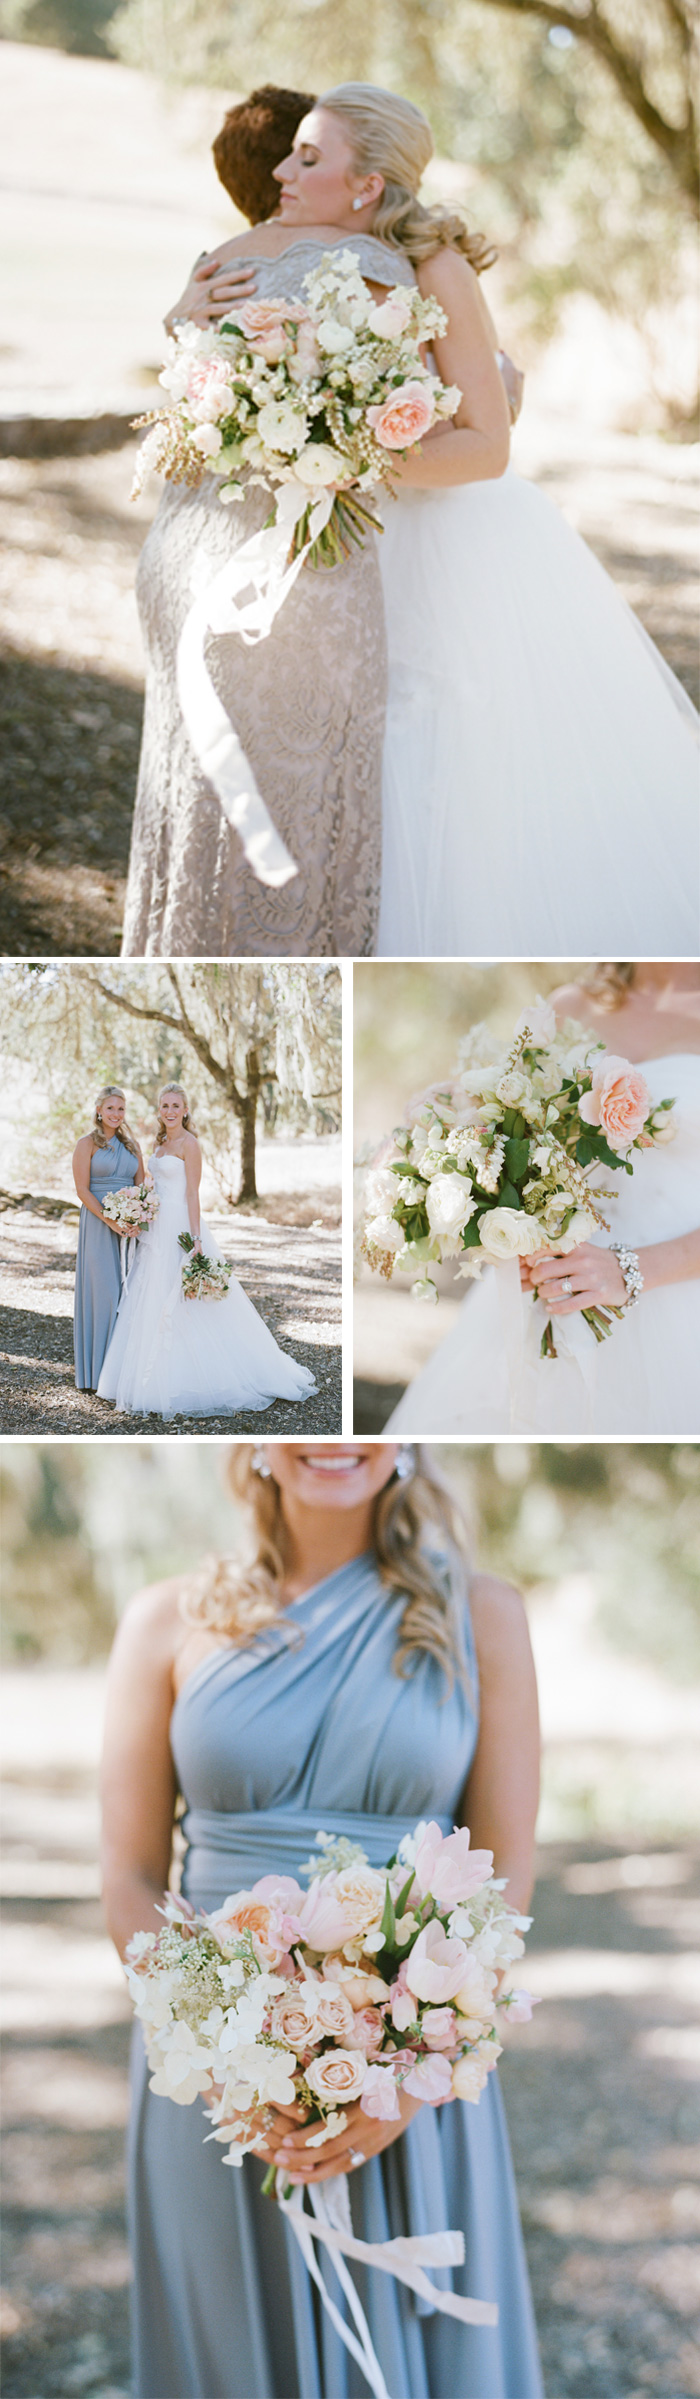 SylvieGIl-Film-Wedding-Photography-Napa-Sonoma-California-Wedding gown- pastel bouquet